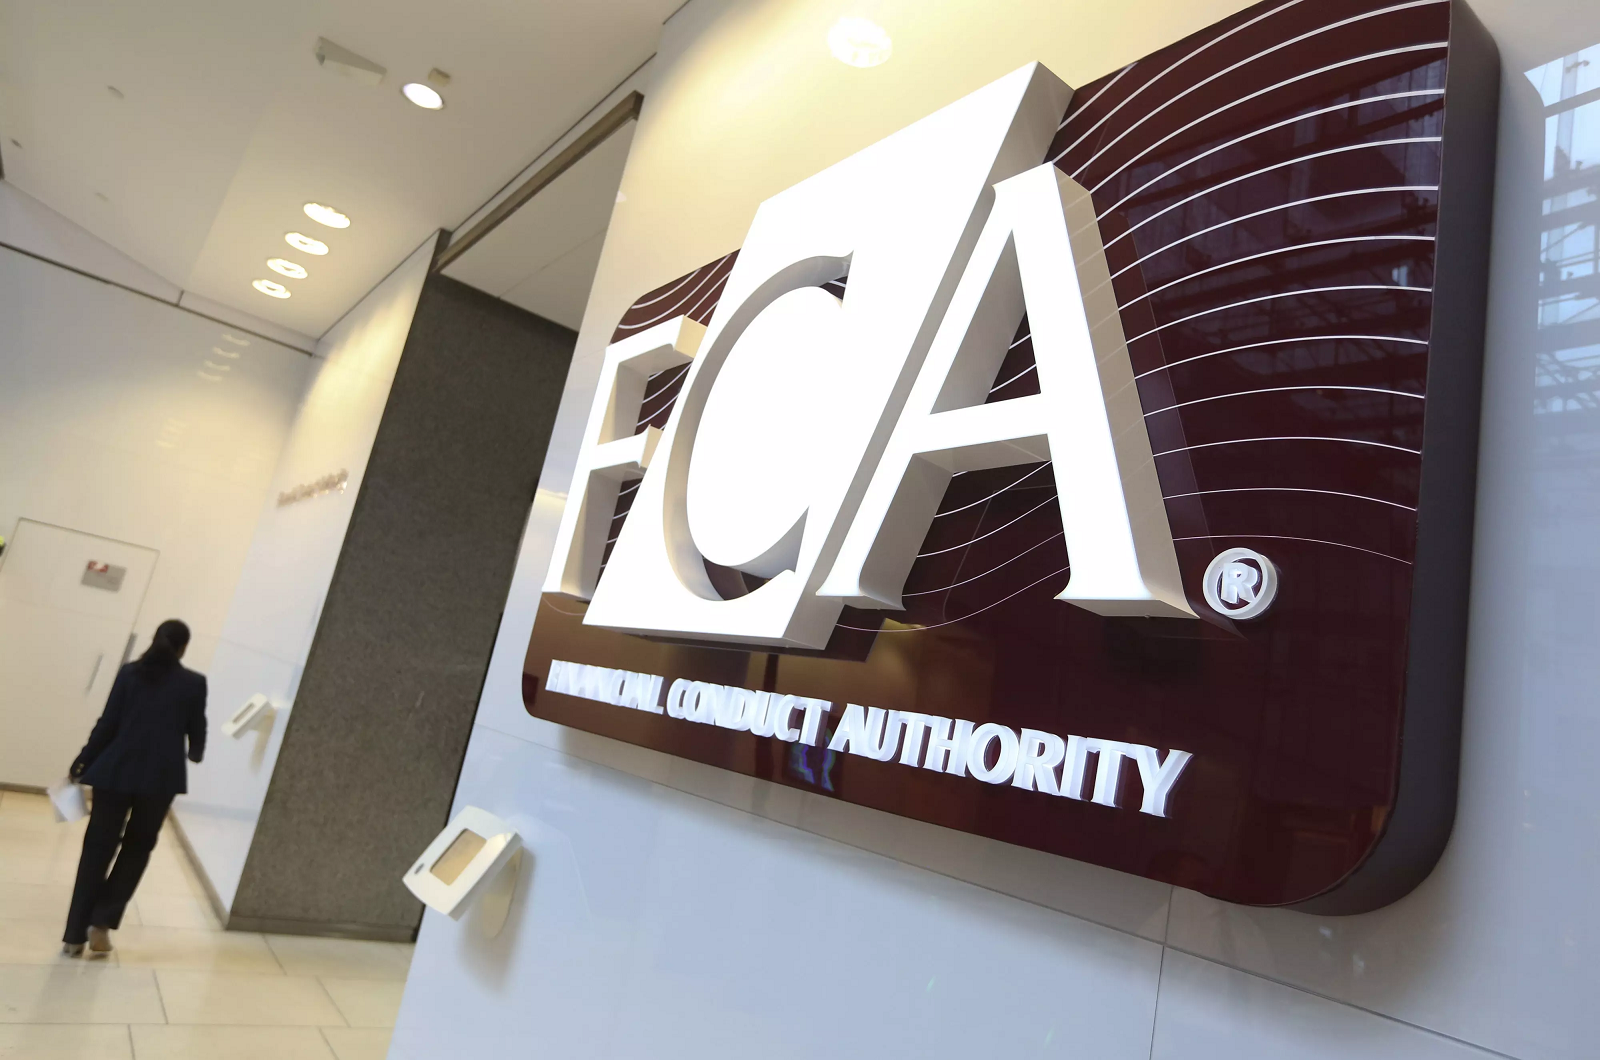 FCA-authority Has the Era of Helicopter Money Come to an End?